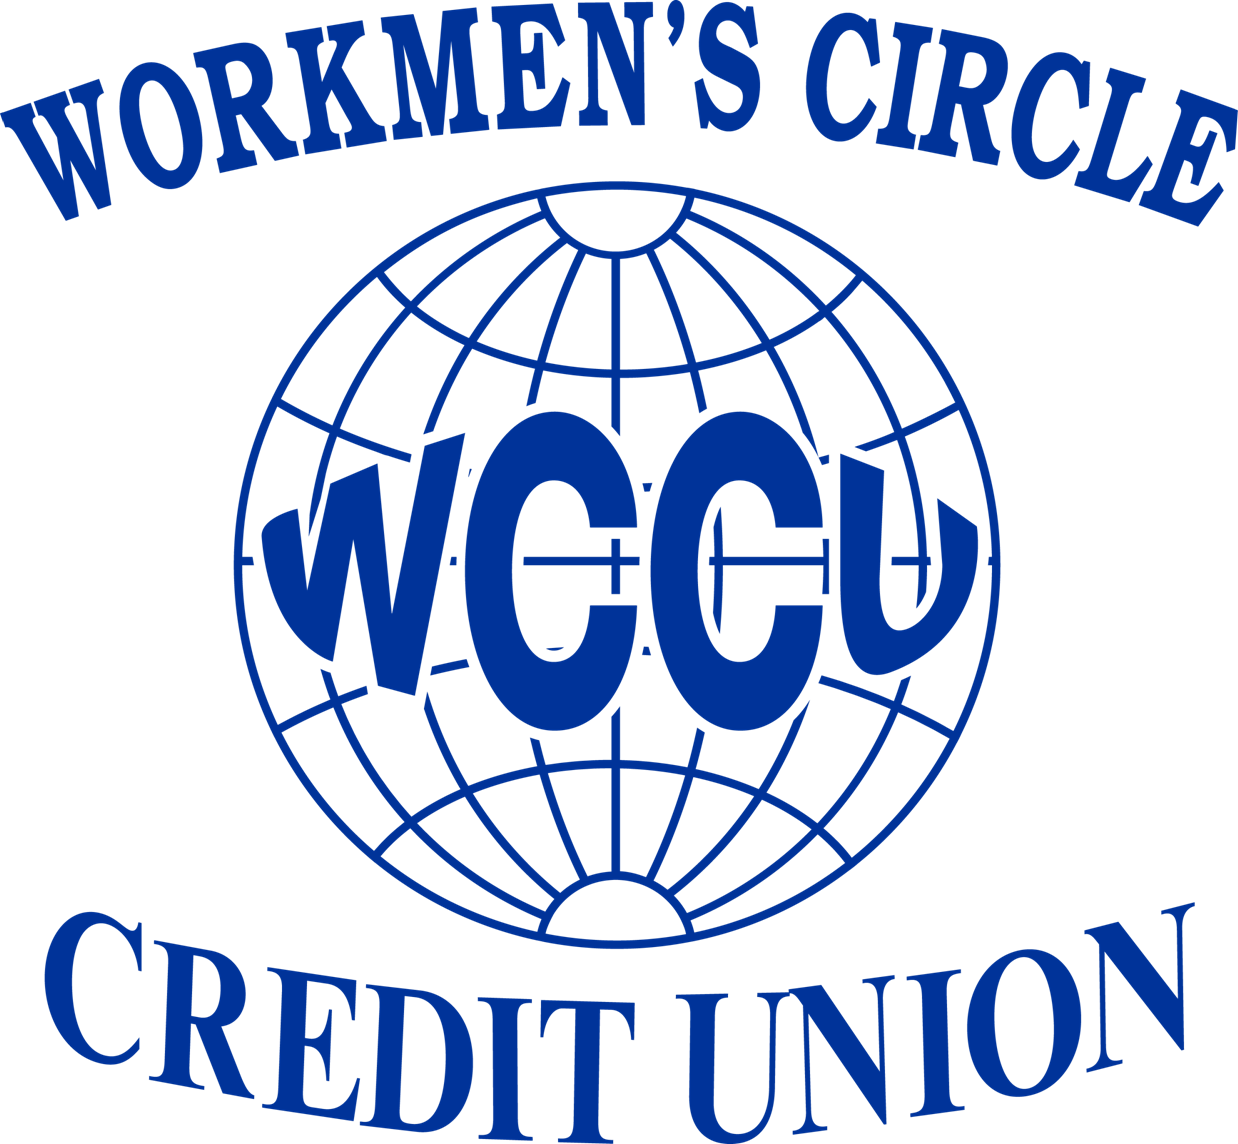 Workmens Circle Credit Union logo